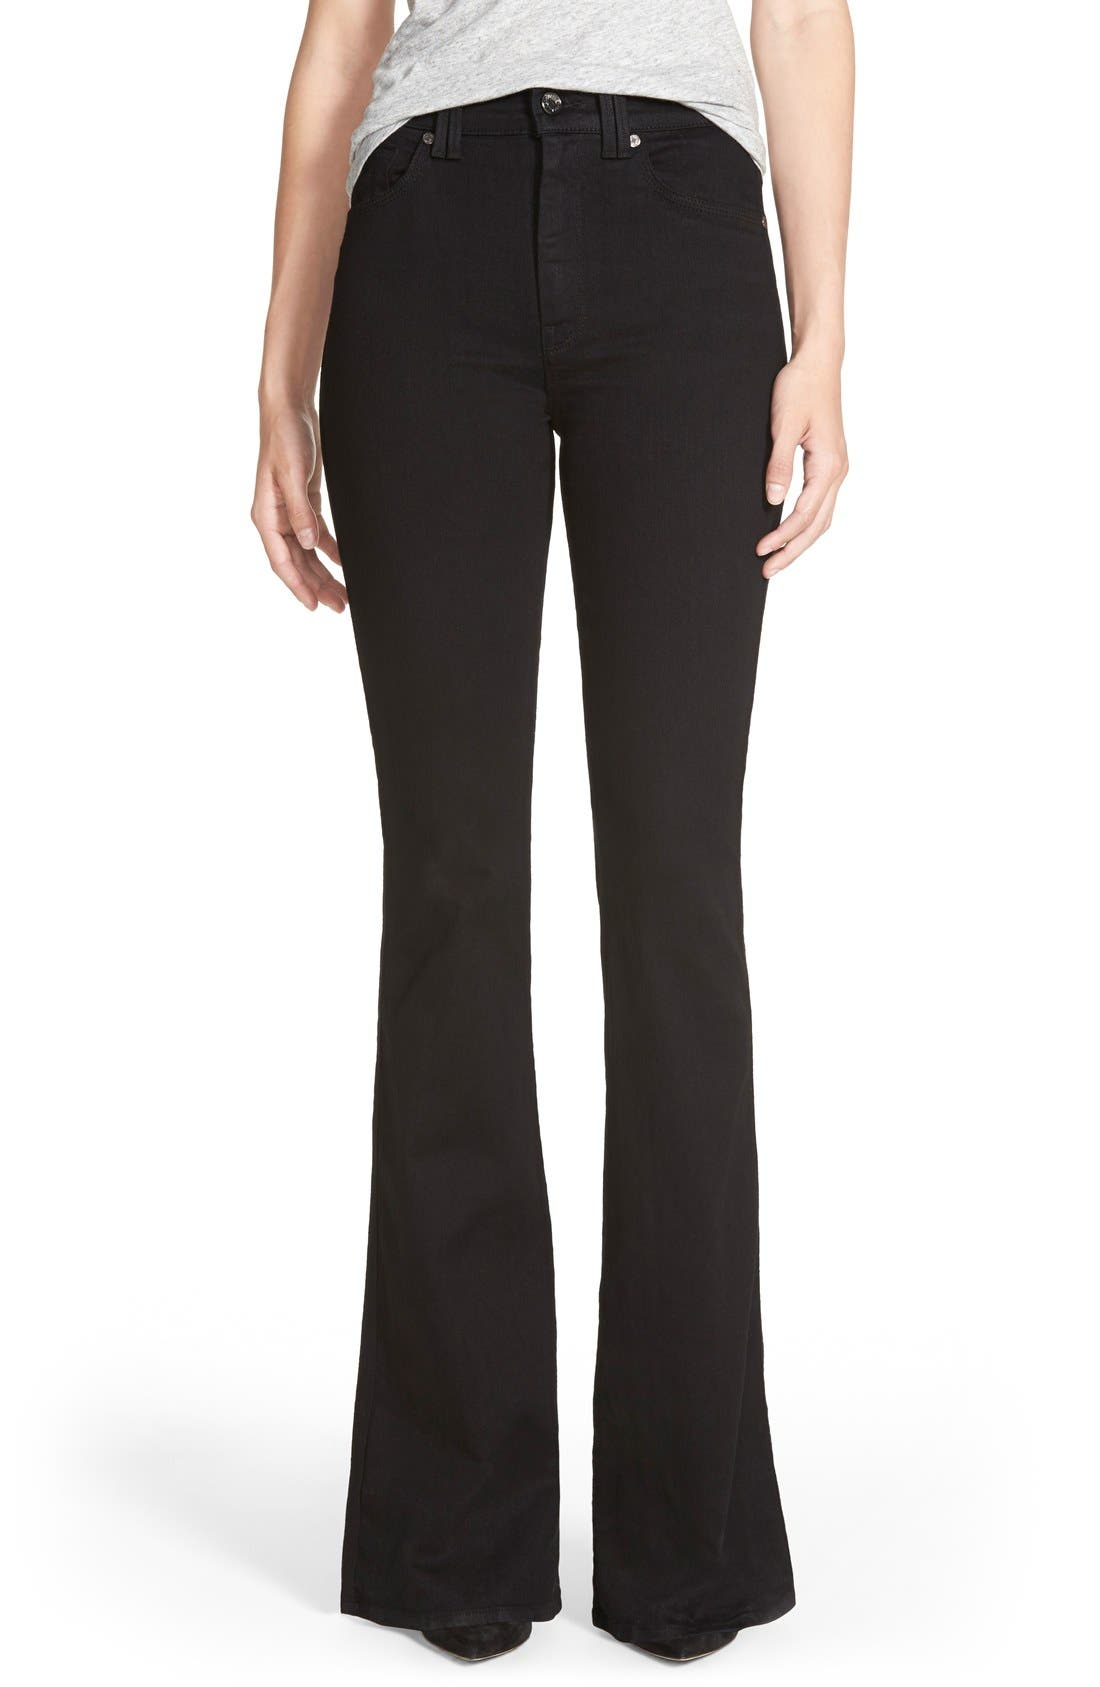 Alternate Image 1 Selected - 7 For All Mankind® High Rise Flare Jeans (Overdyed Black)